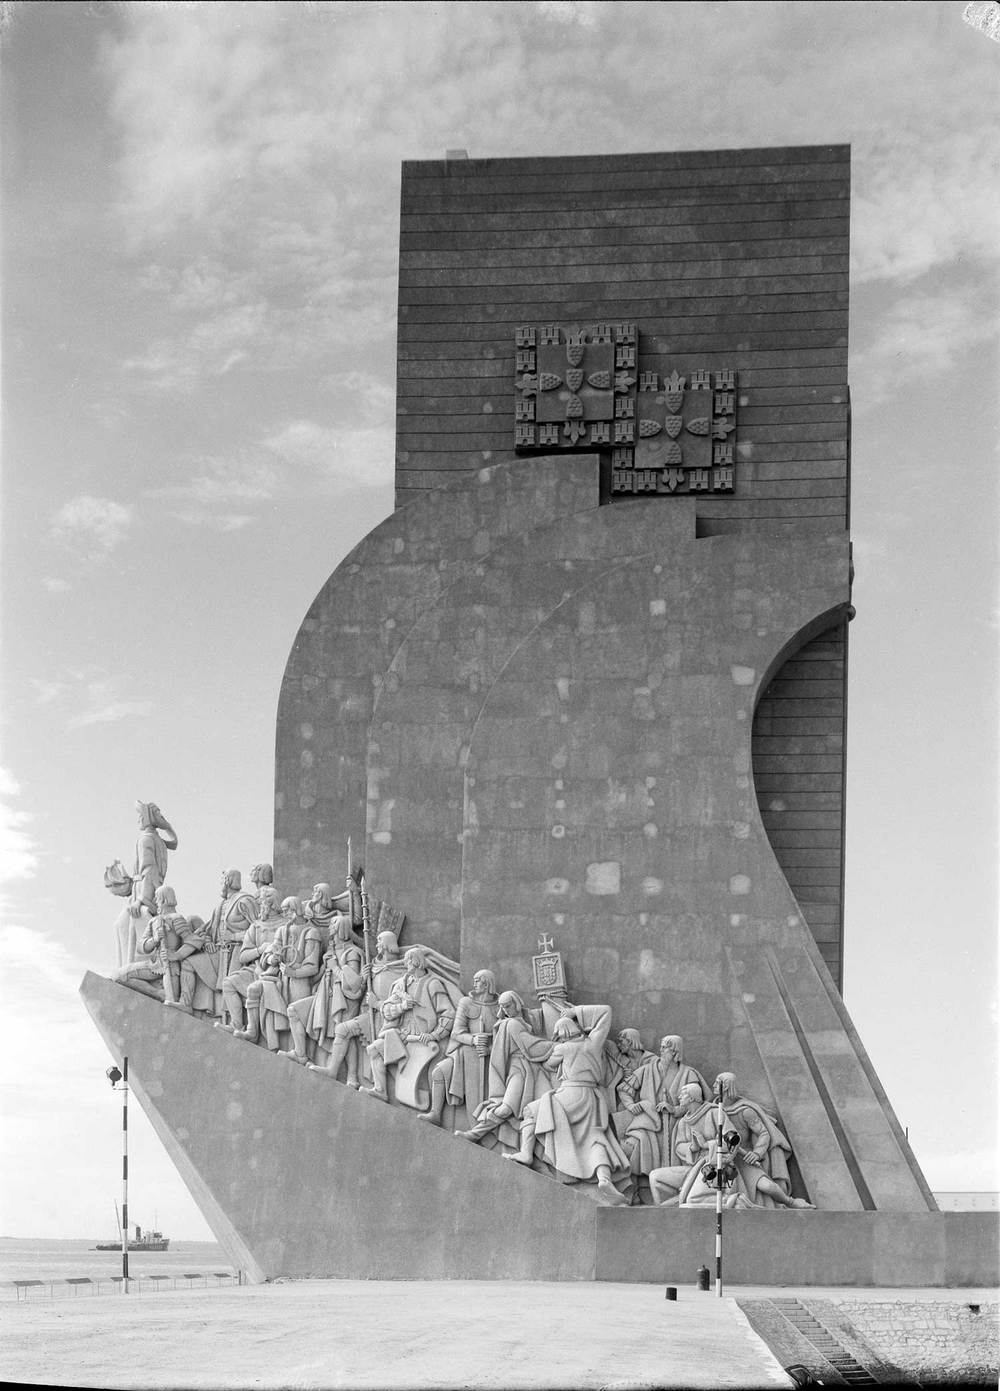 THE MONUMENT TO THE DISCOVERIES  Photo: Mário Novais, 1940, Lisbon  Biblioteca de Arte da Fundação Calouste Gulbenkian [CFT003_015689]